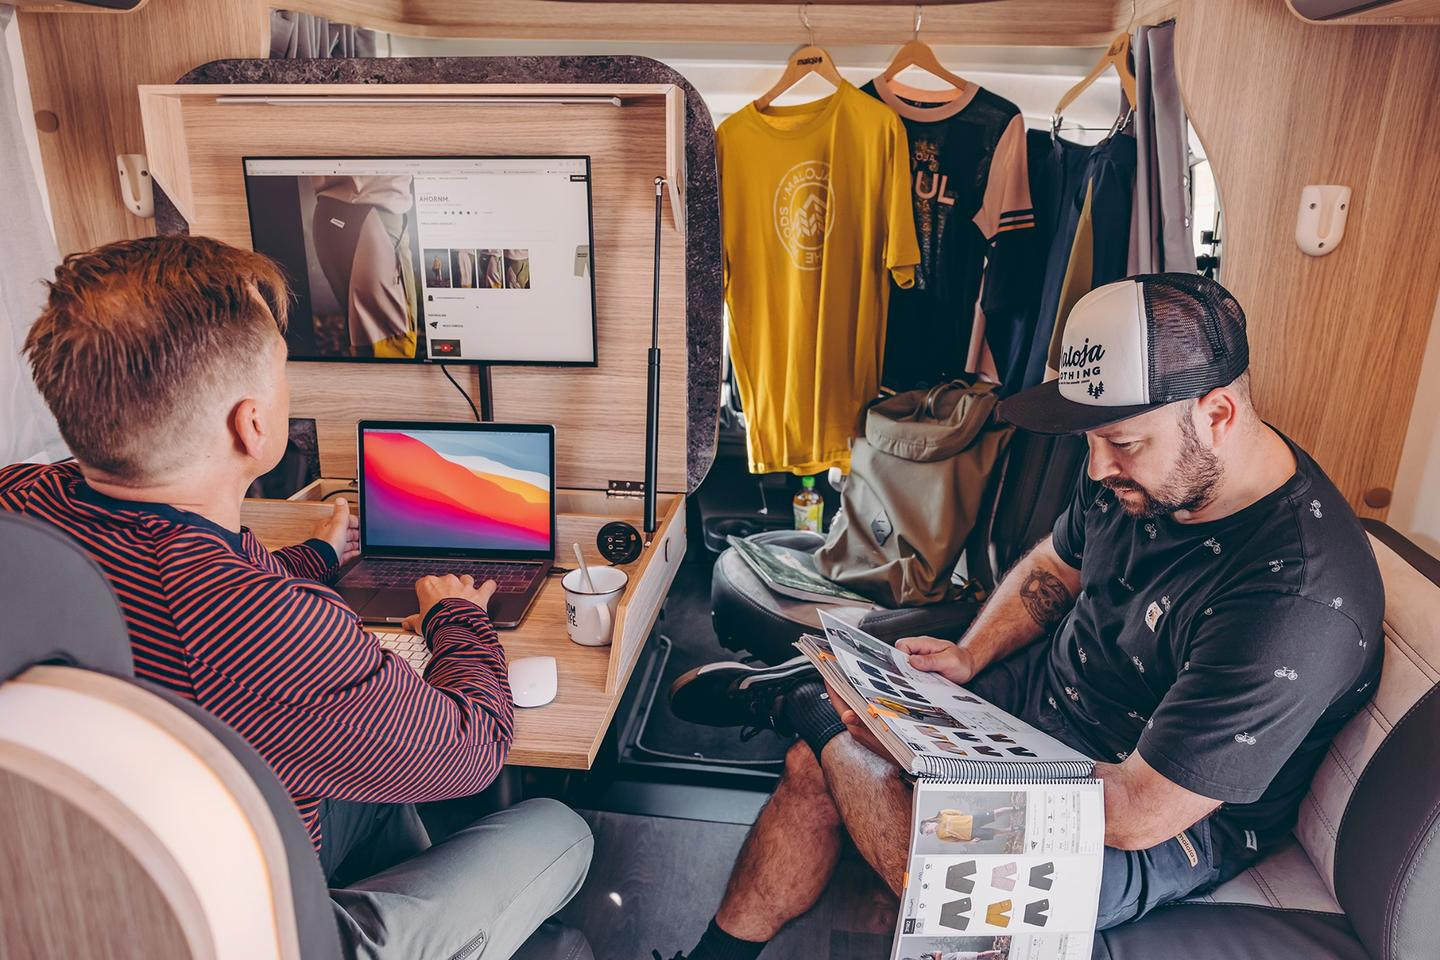 A Home Office on Wheels isn't merely for solo office work; here it functions as a sales meeting location